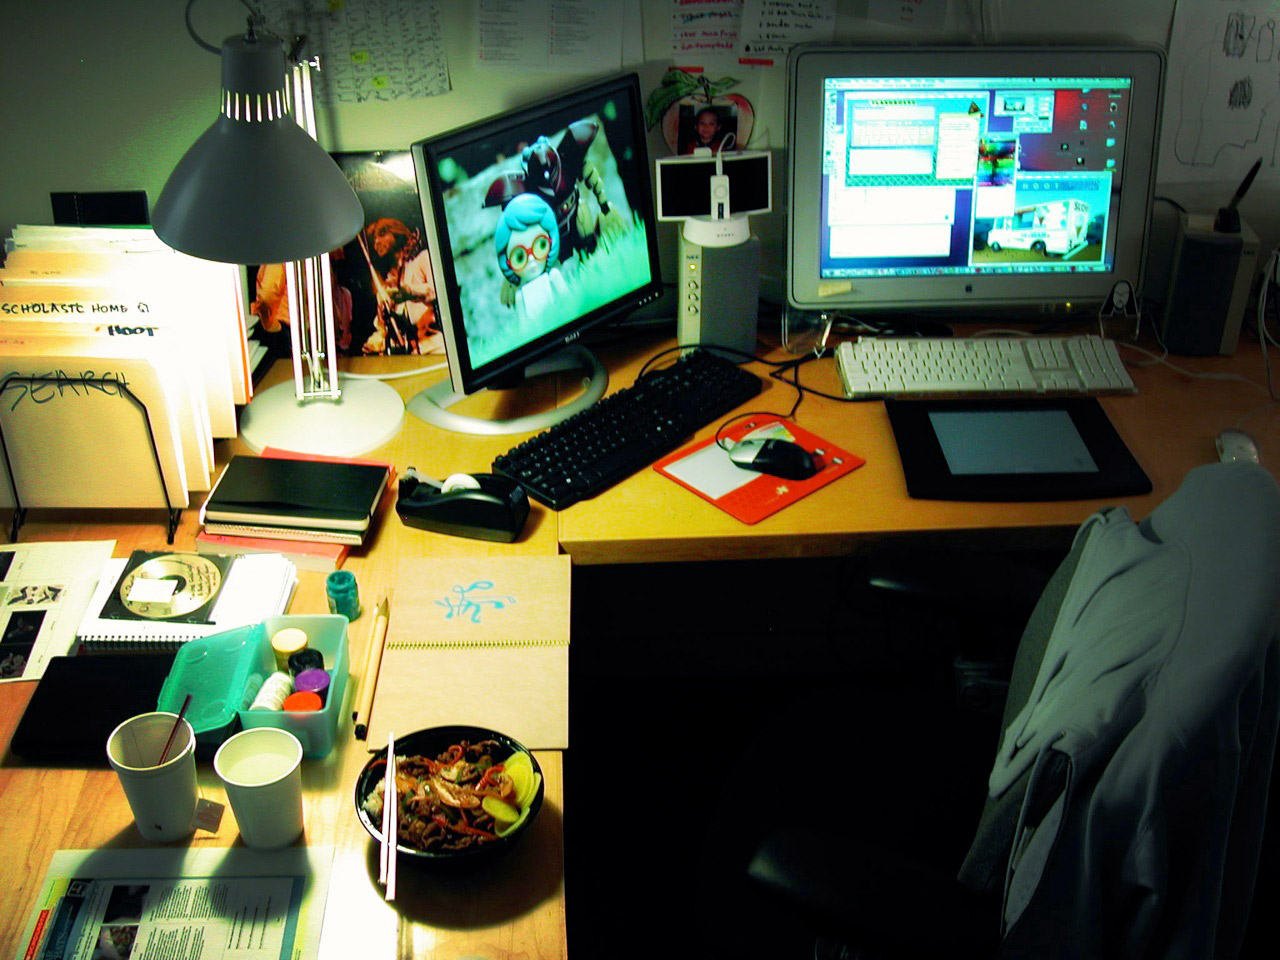 a workspace with two monitors and some food